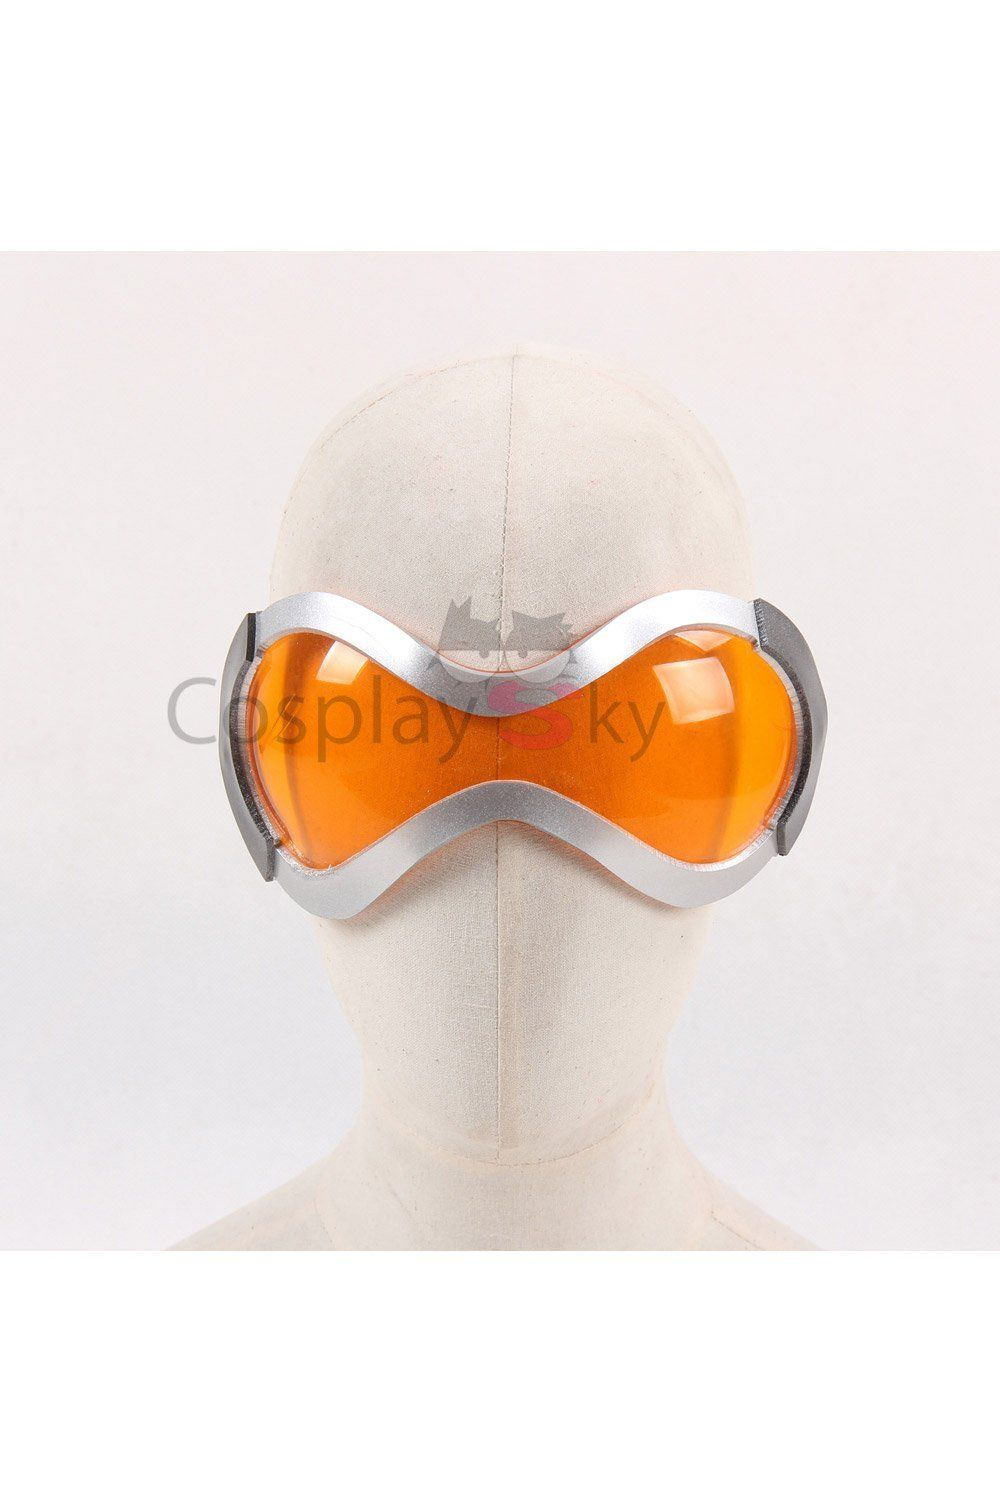 Game Overwatch Tracer Lena Oxton Glasses Goggles Eye Mask OW Fans Cosplay Props